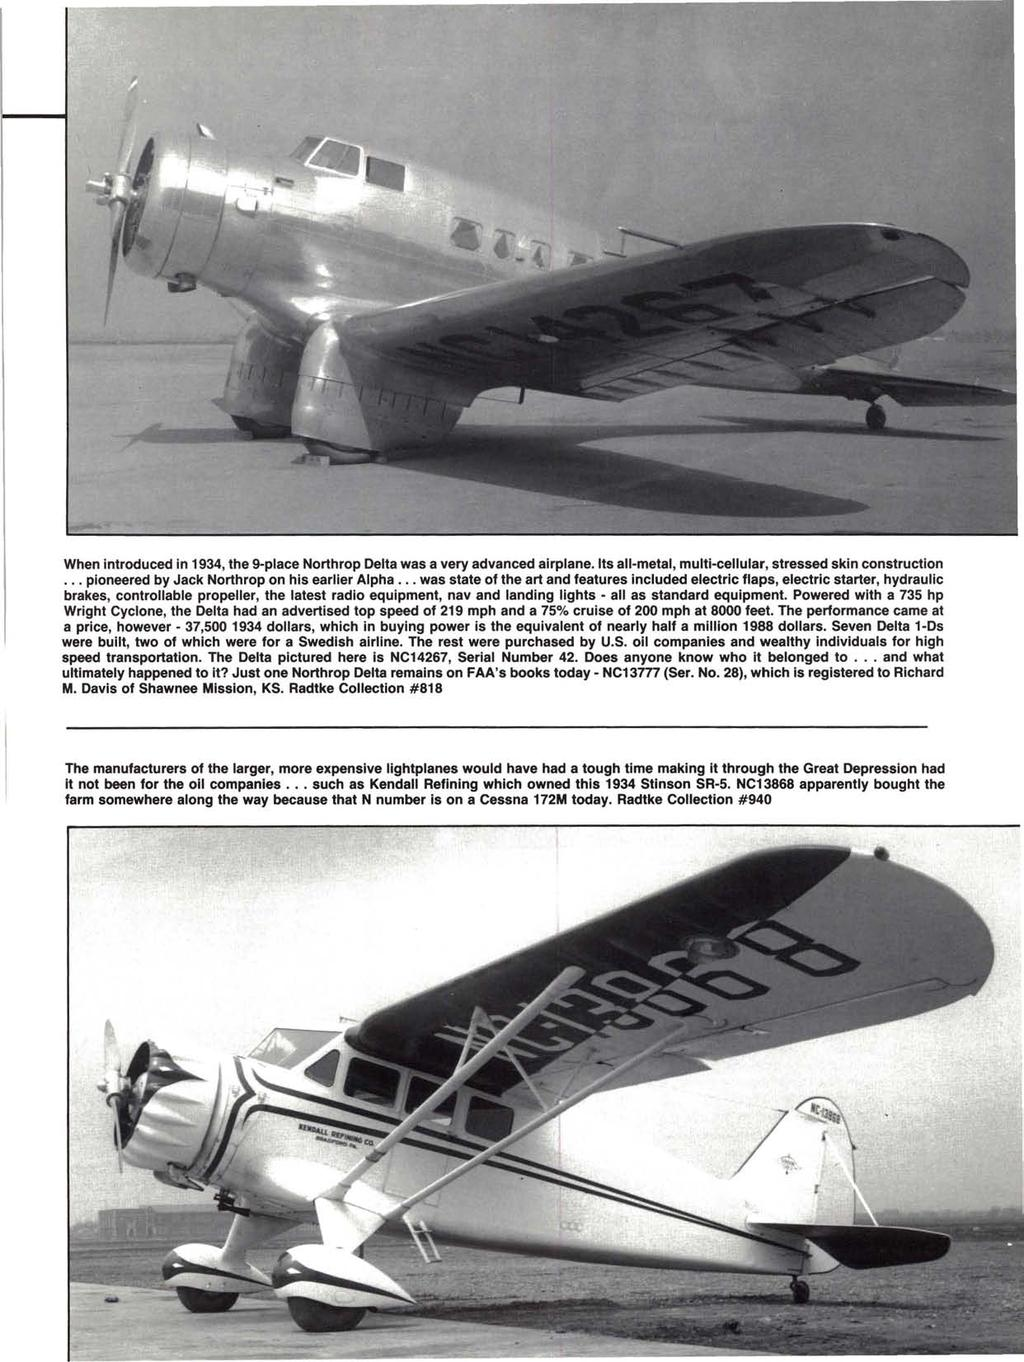 When introduced in 1934, the 9-place Northrop Delta was a very advanced airplane. Its all-metal, multi-cellular, stressed skin construction... pioneered by Jack Northrop on his earlier Alpha.